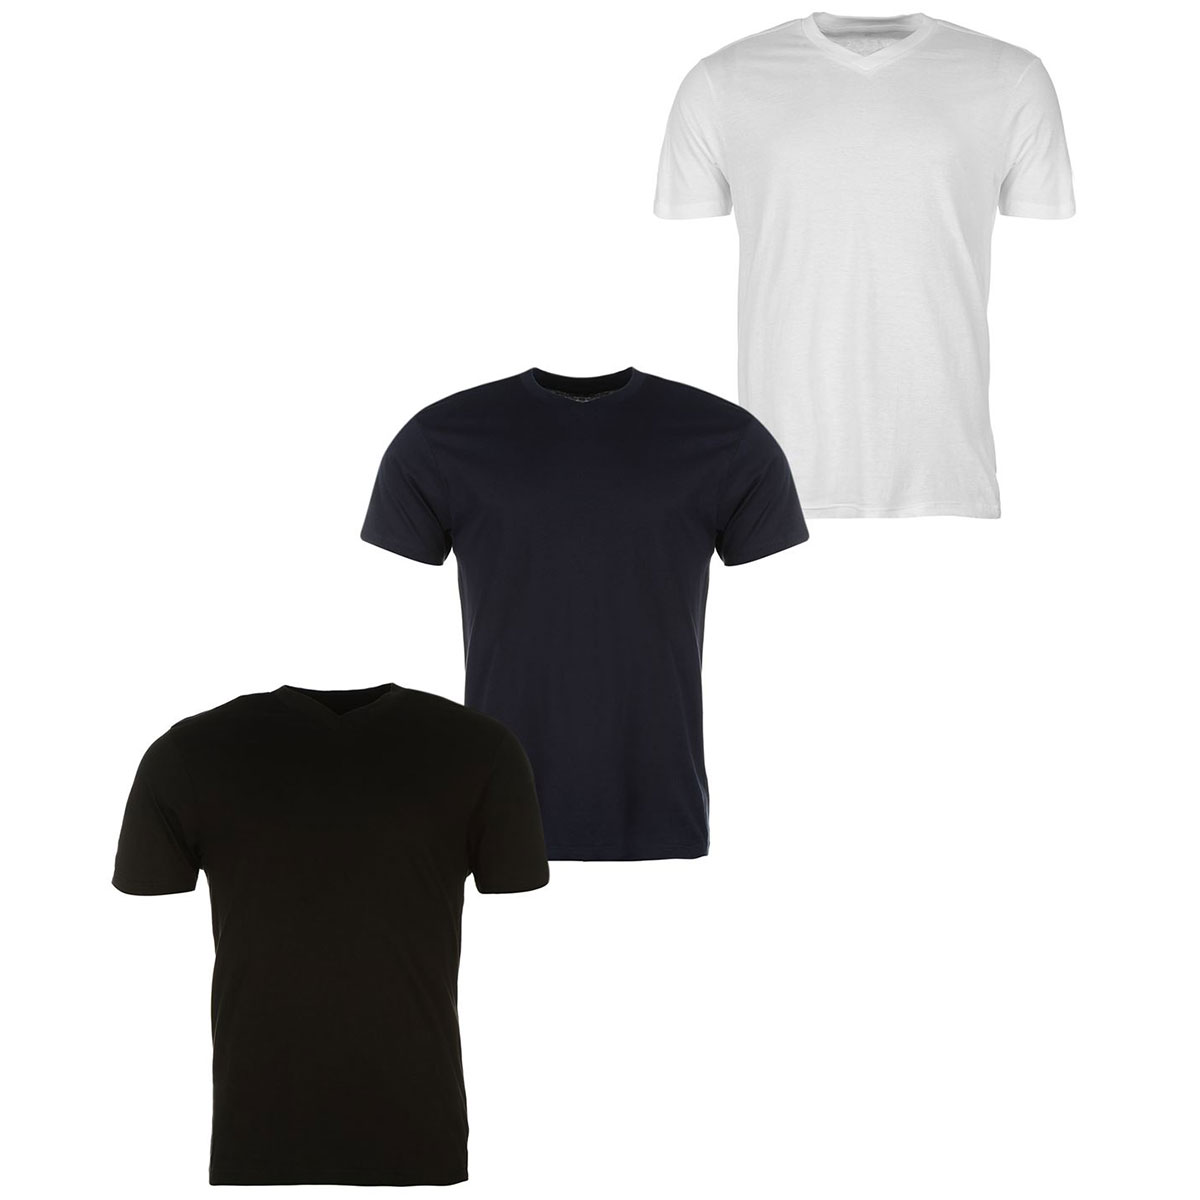 Donnay Men's V-Neck Short-Sleeve Tees, 3-Pack - Various Patterns, XS